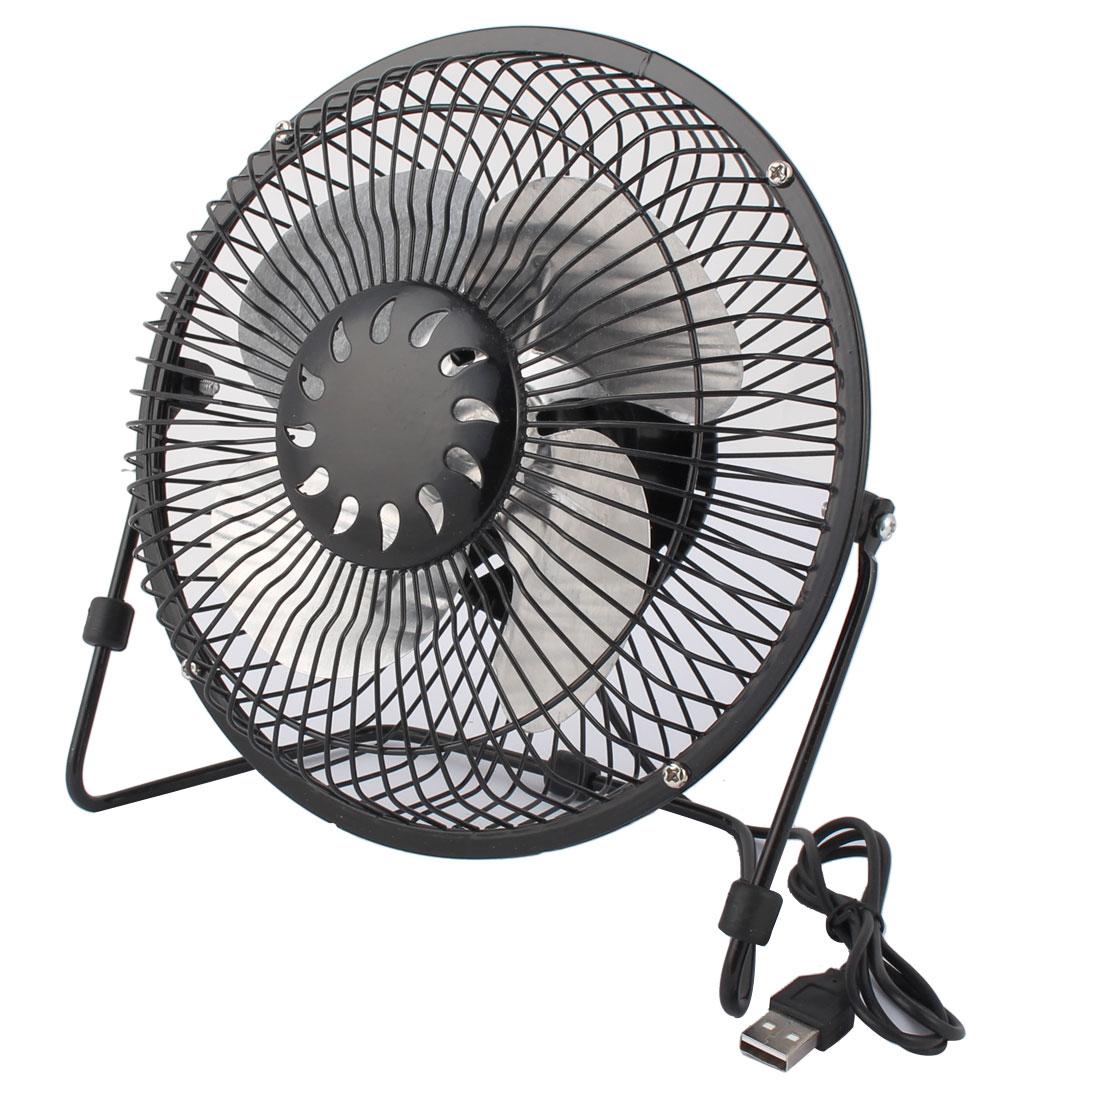 Computer Notebook Laptop Metal Portable USB Mini Cooler Cooling Fan Black